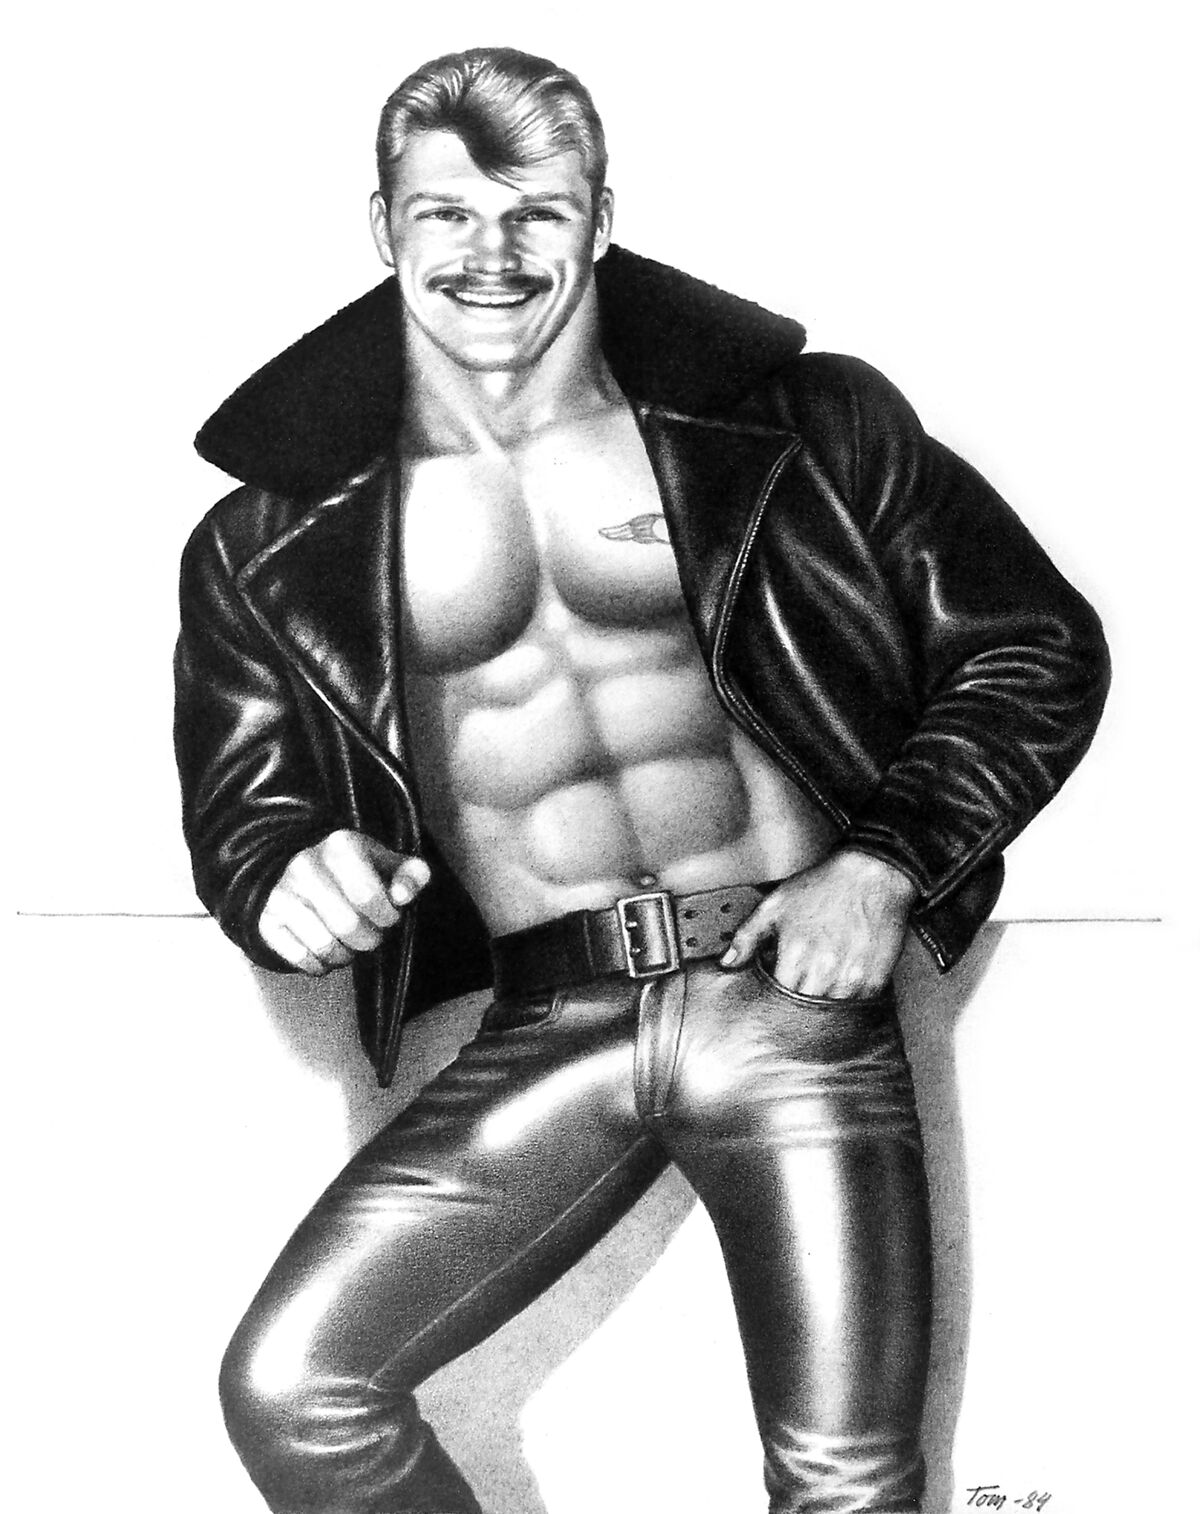 Tom of Finland, Untitled (Portrait of Durk Dehner), 1984. Courtesy of the Tom of Finland Foundation and David Kordansky Gallery, Los Angeles, CA.